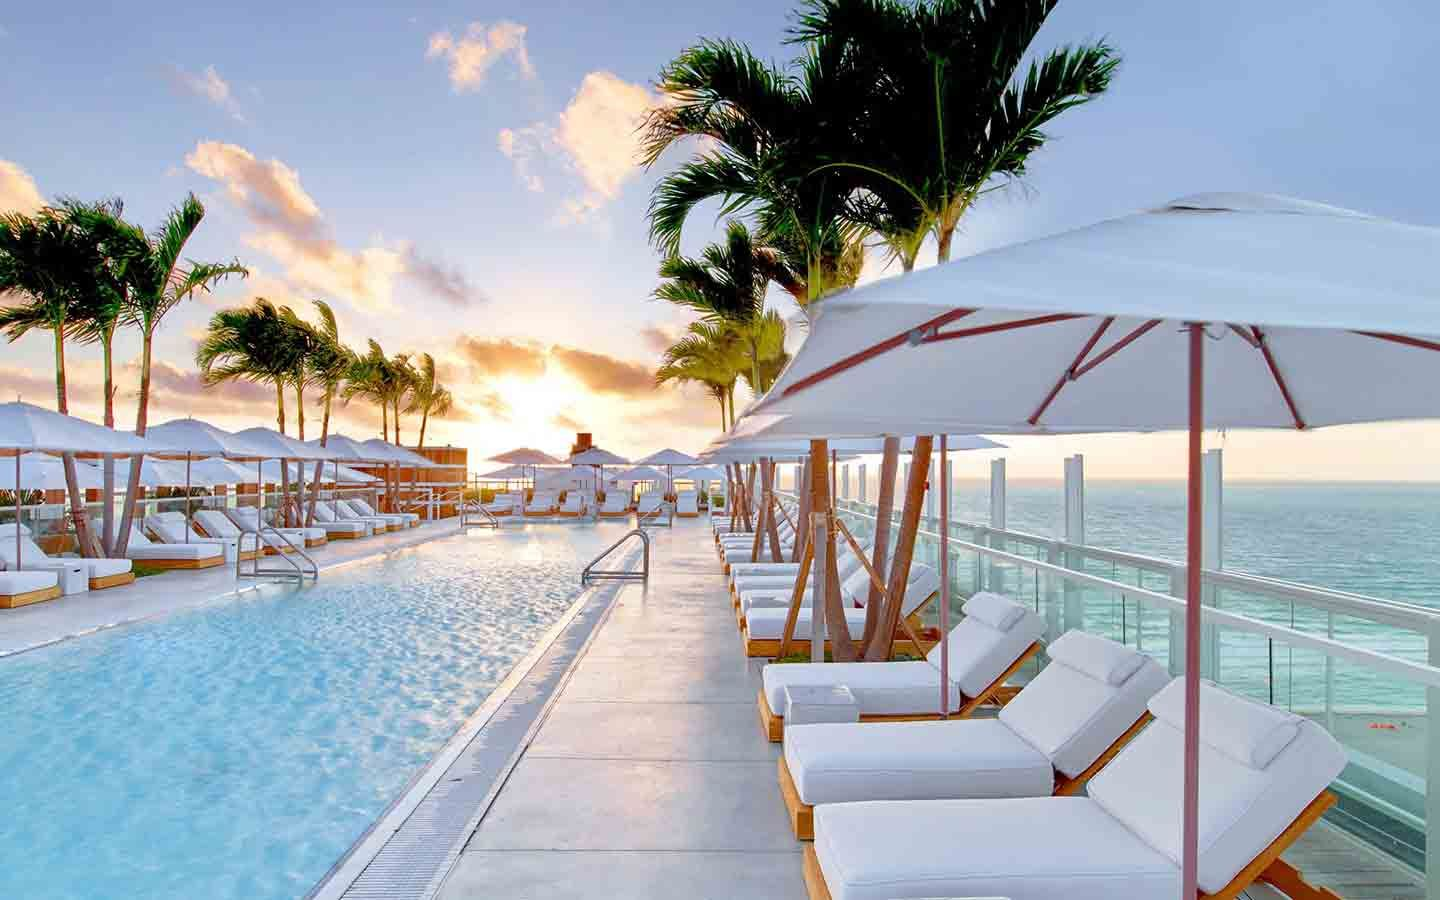 1 Hotel's Beautiful Sunrise Beach View and Pool